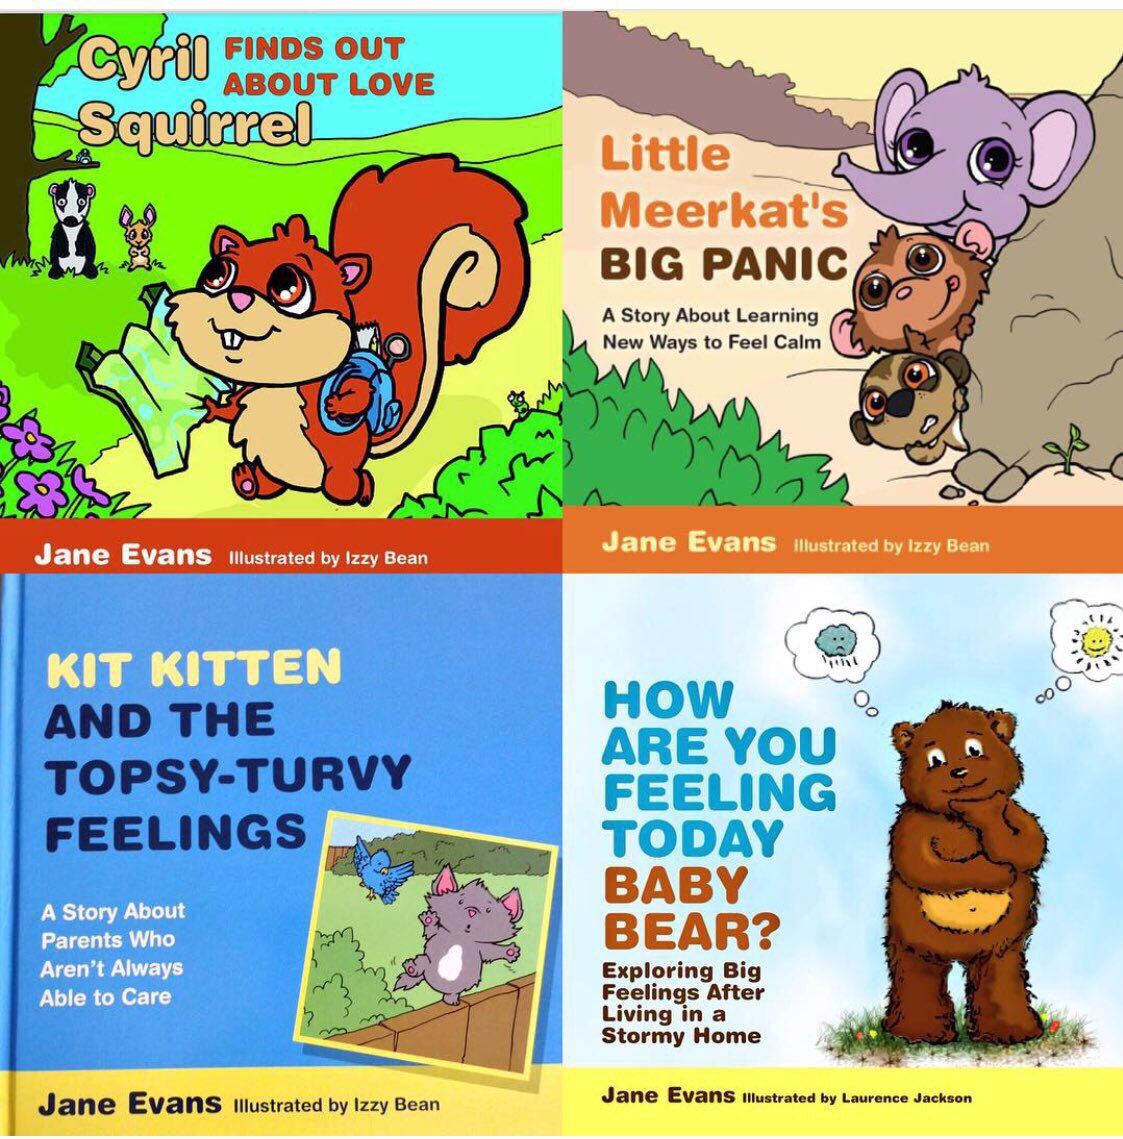 Take a look at new Pastoral Care and Special Educational Needs catalogue  http:// emails.jkp.com/t/t-0129E66A8A  &nbsp;  … via @JKPBooks #earlyyears #School <br>http://pic.twitter.com/7xQLhhAGhk